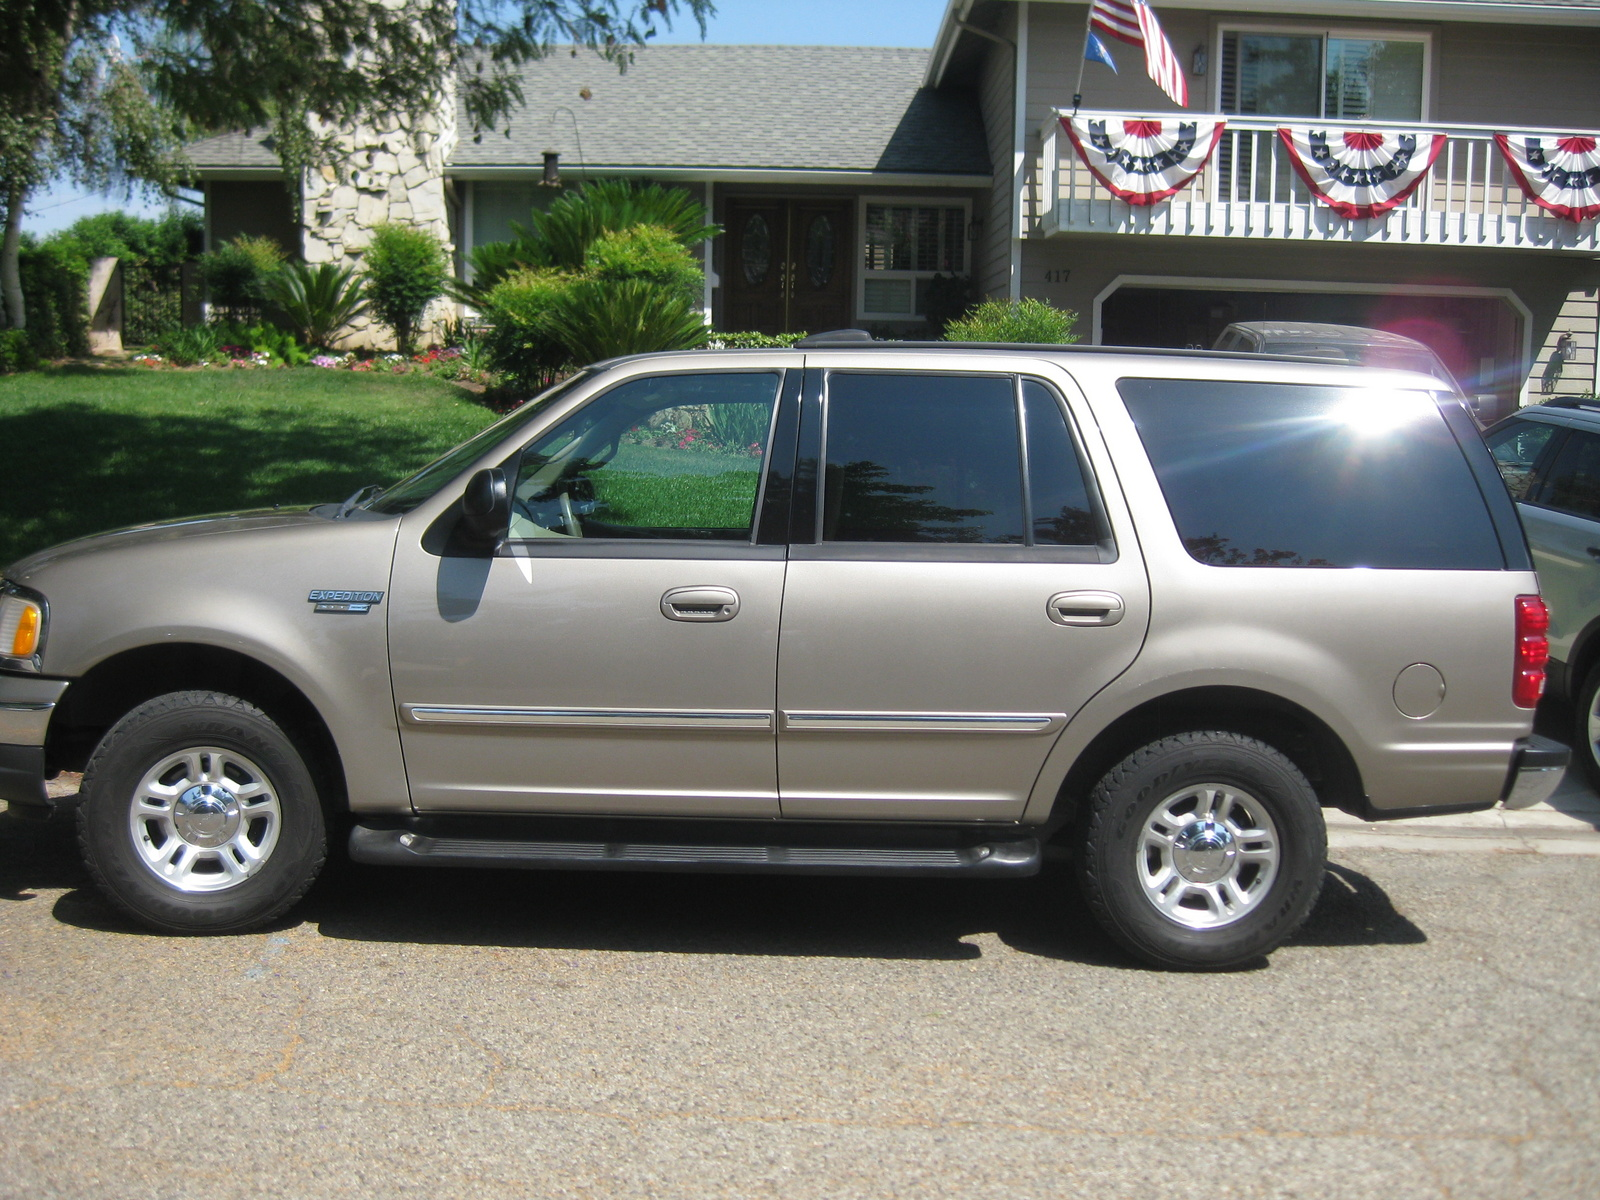 Ford expedition 2001 photo - 6